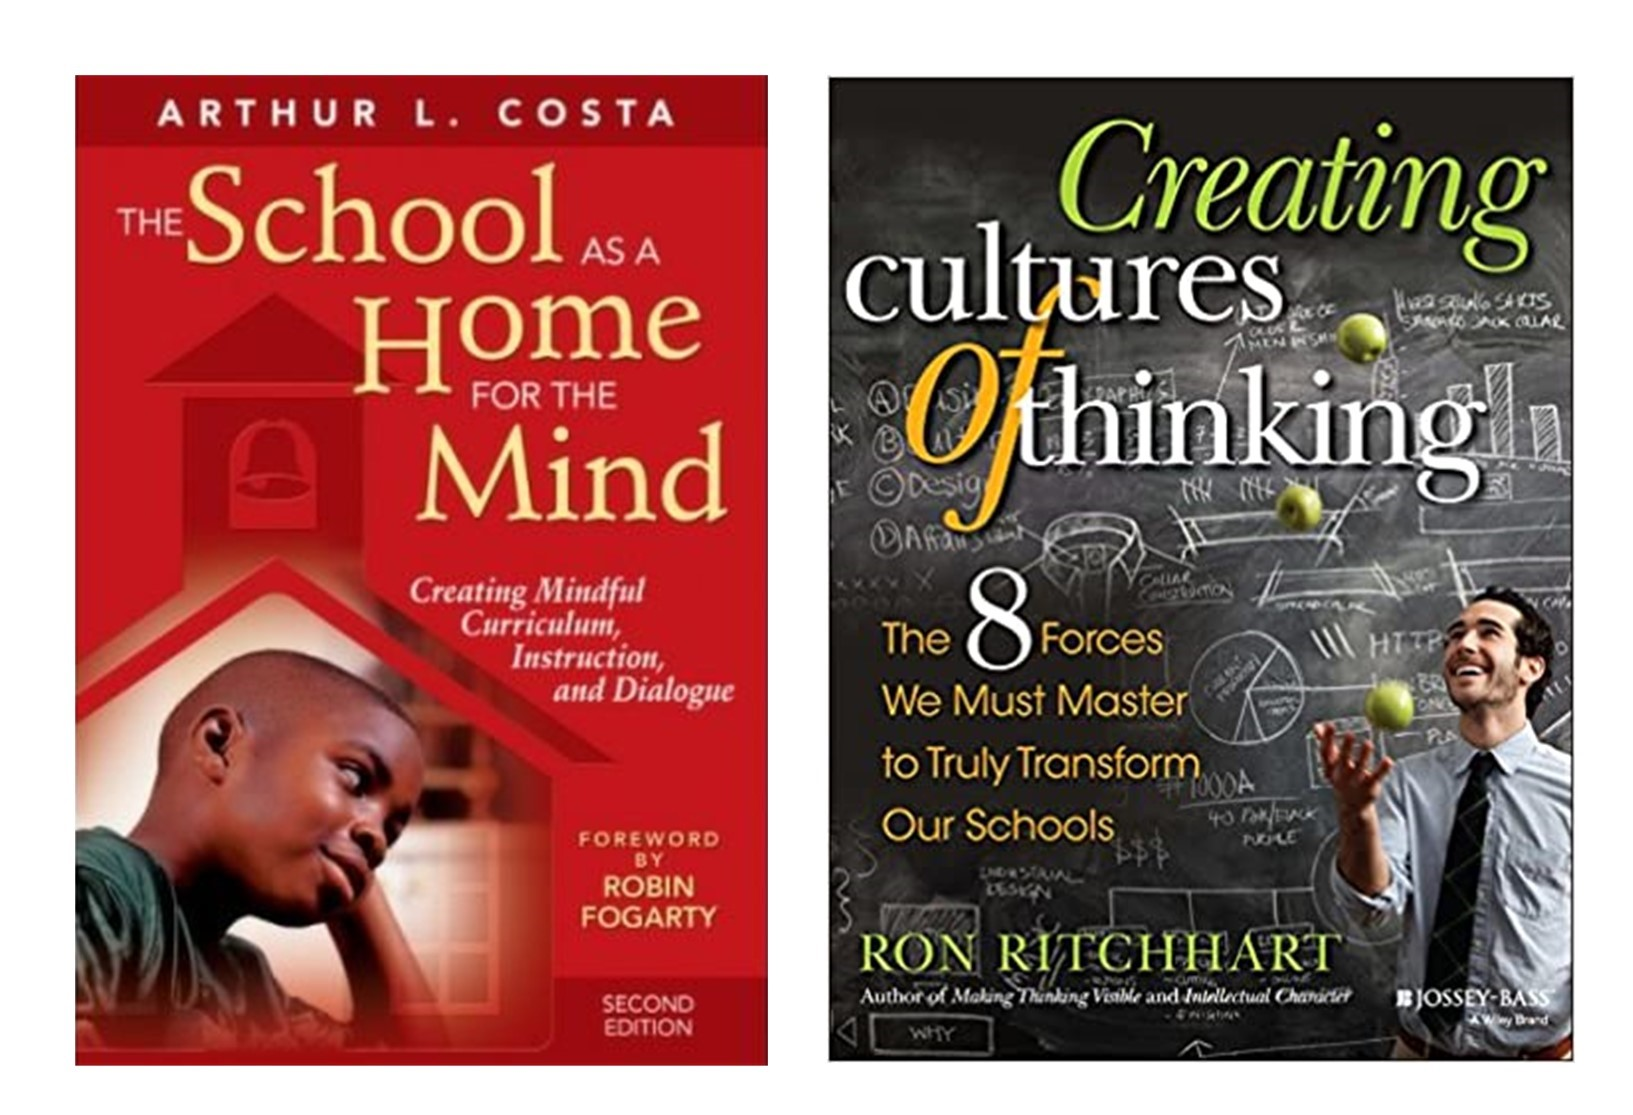 The School as a Home for the Mind:  Creating Mindful Curriculum, Instruction, and Dialogue, 2008; Creating Cultures of Thinking:  The 8 Forces We Must Master to Truly Transform Our Schools, 2015